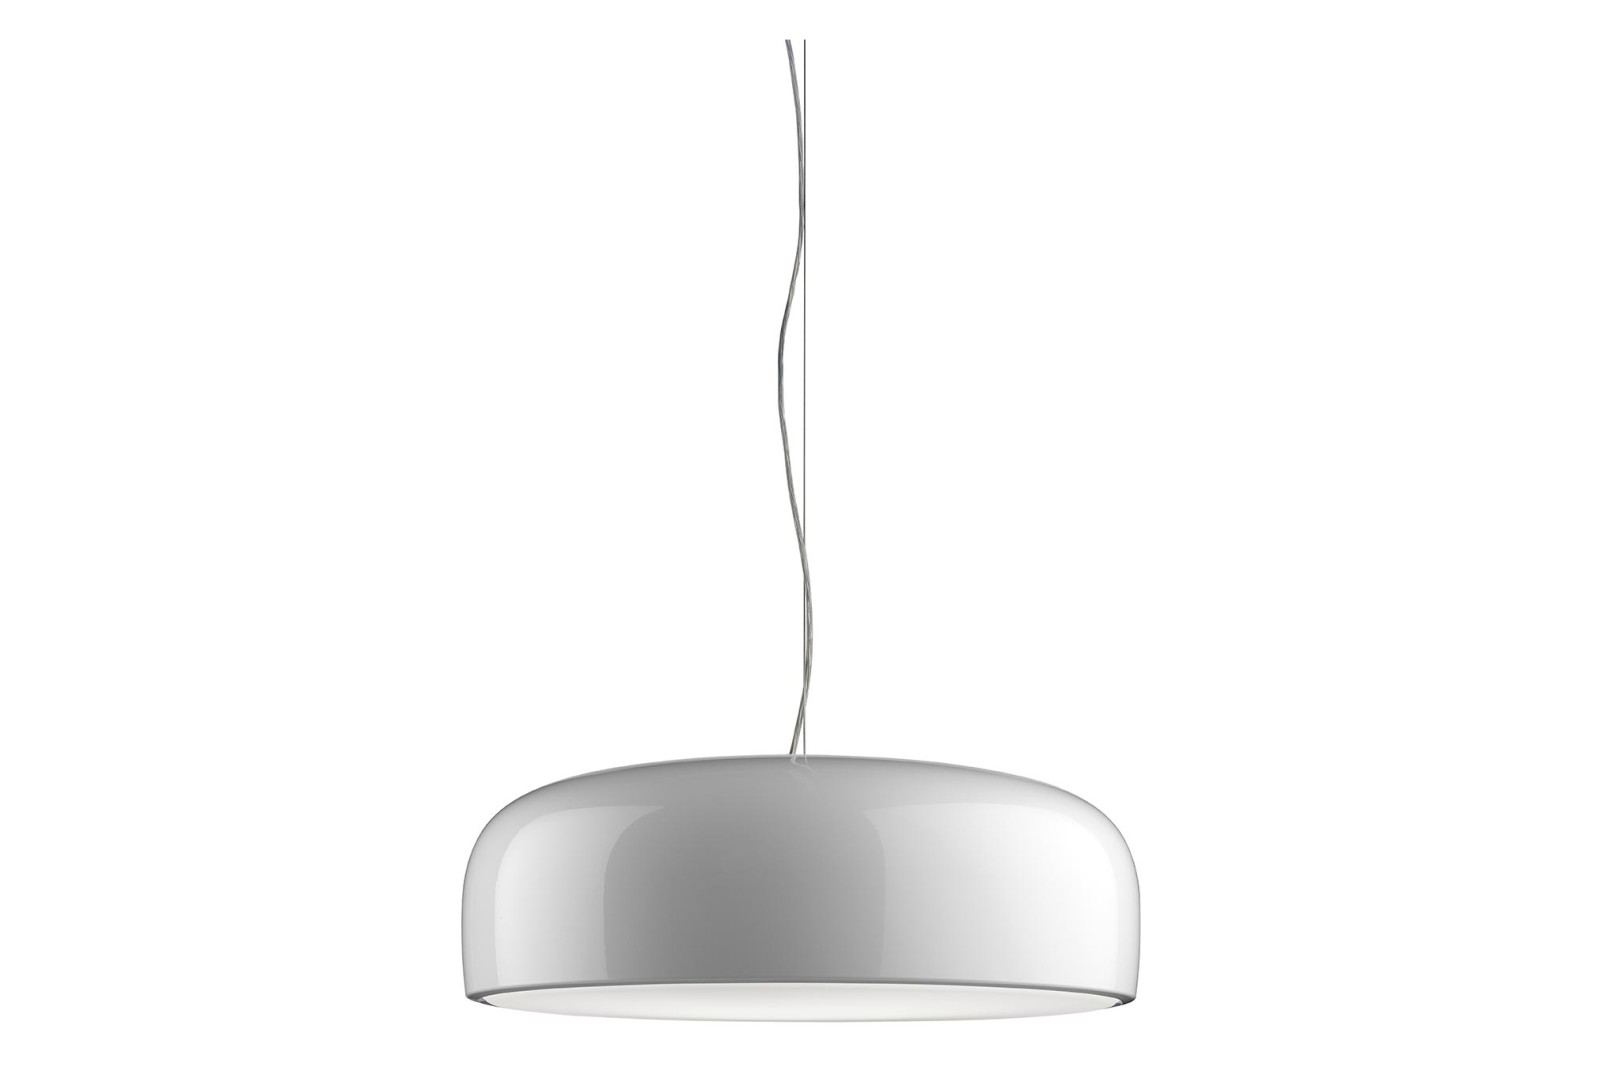 Smithfield LED Pendant Light Metal Glossy White, PUSH DIM